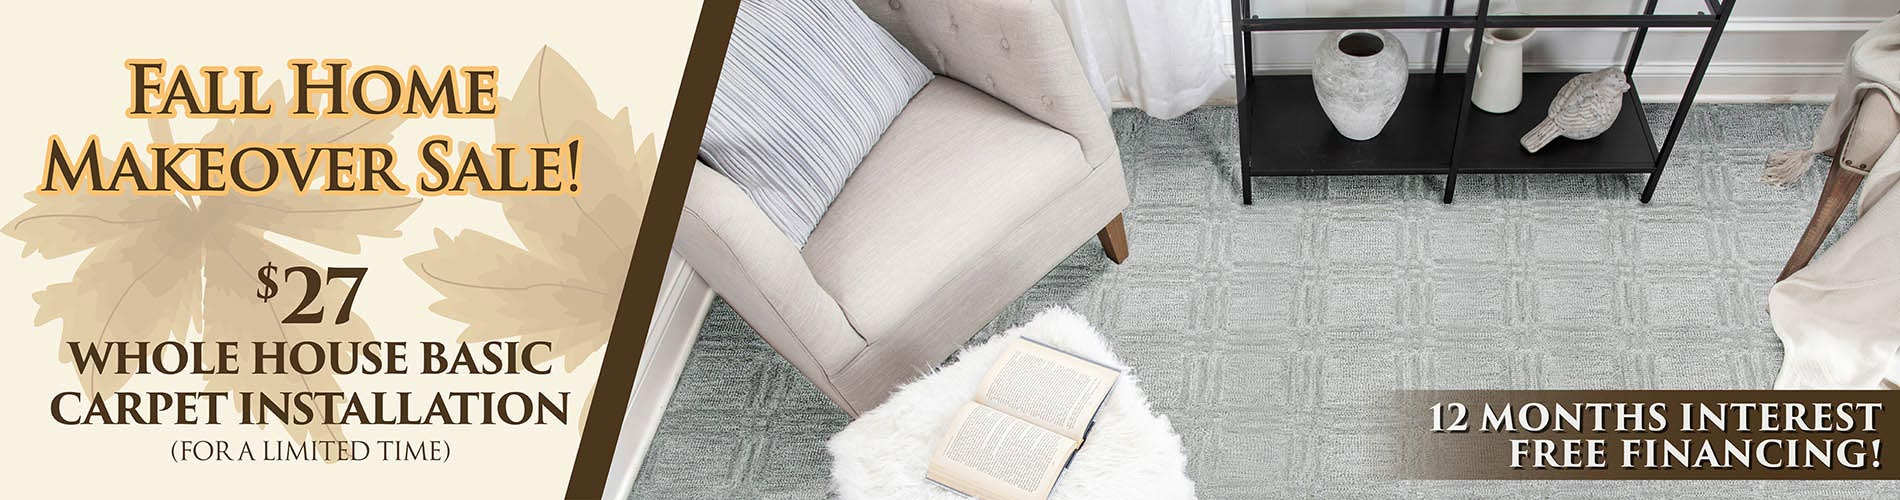 Whole house basic carpet installation only $27 during our Fall Home Makeover Sale